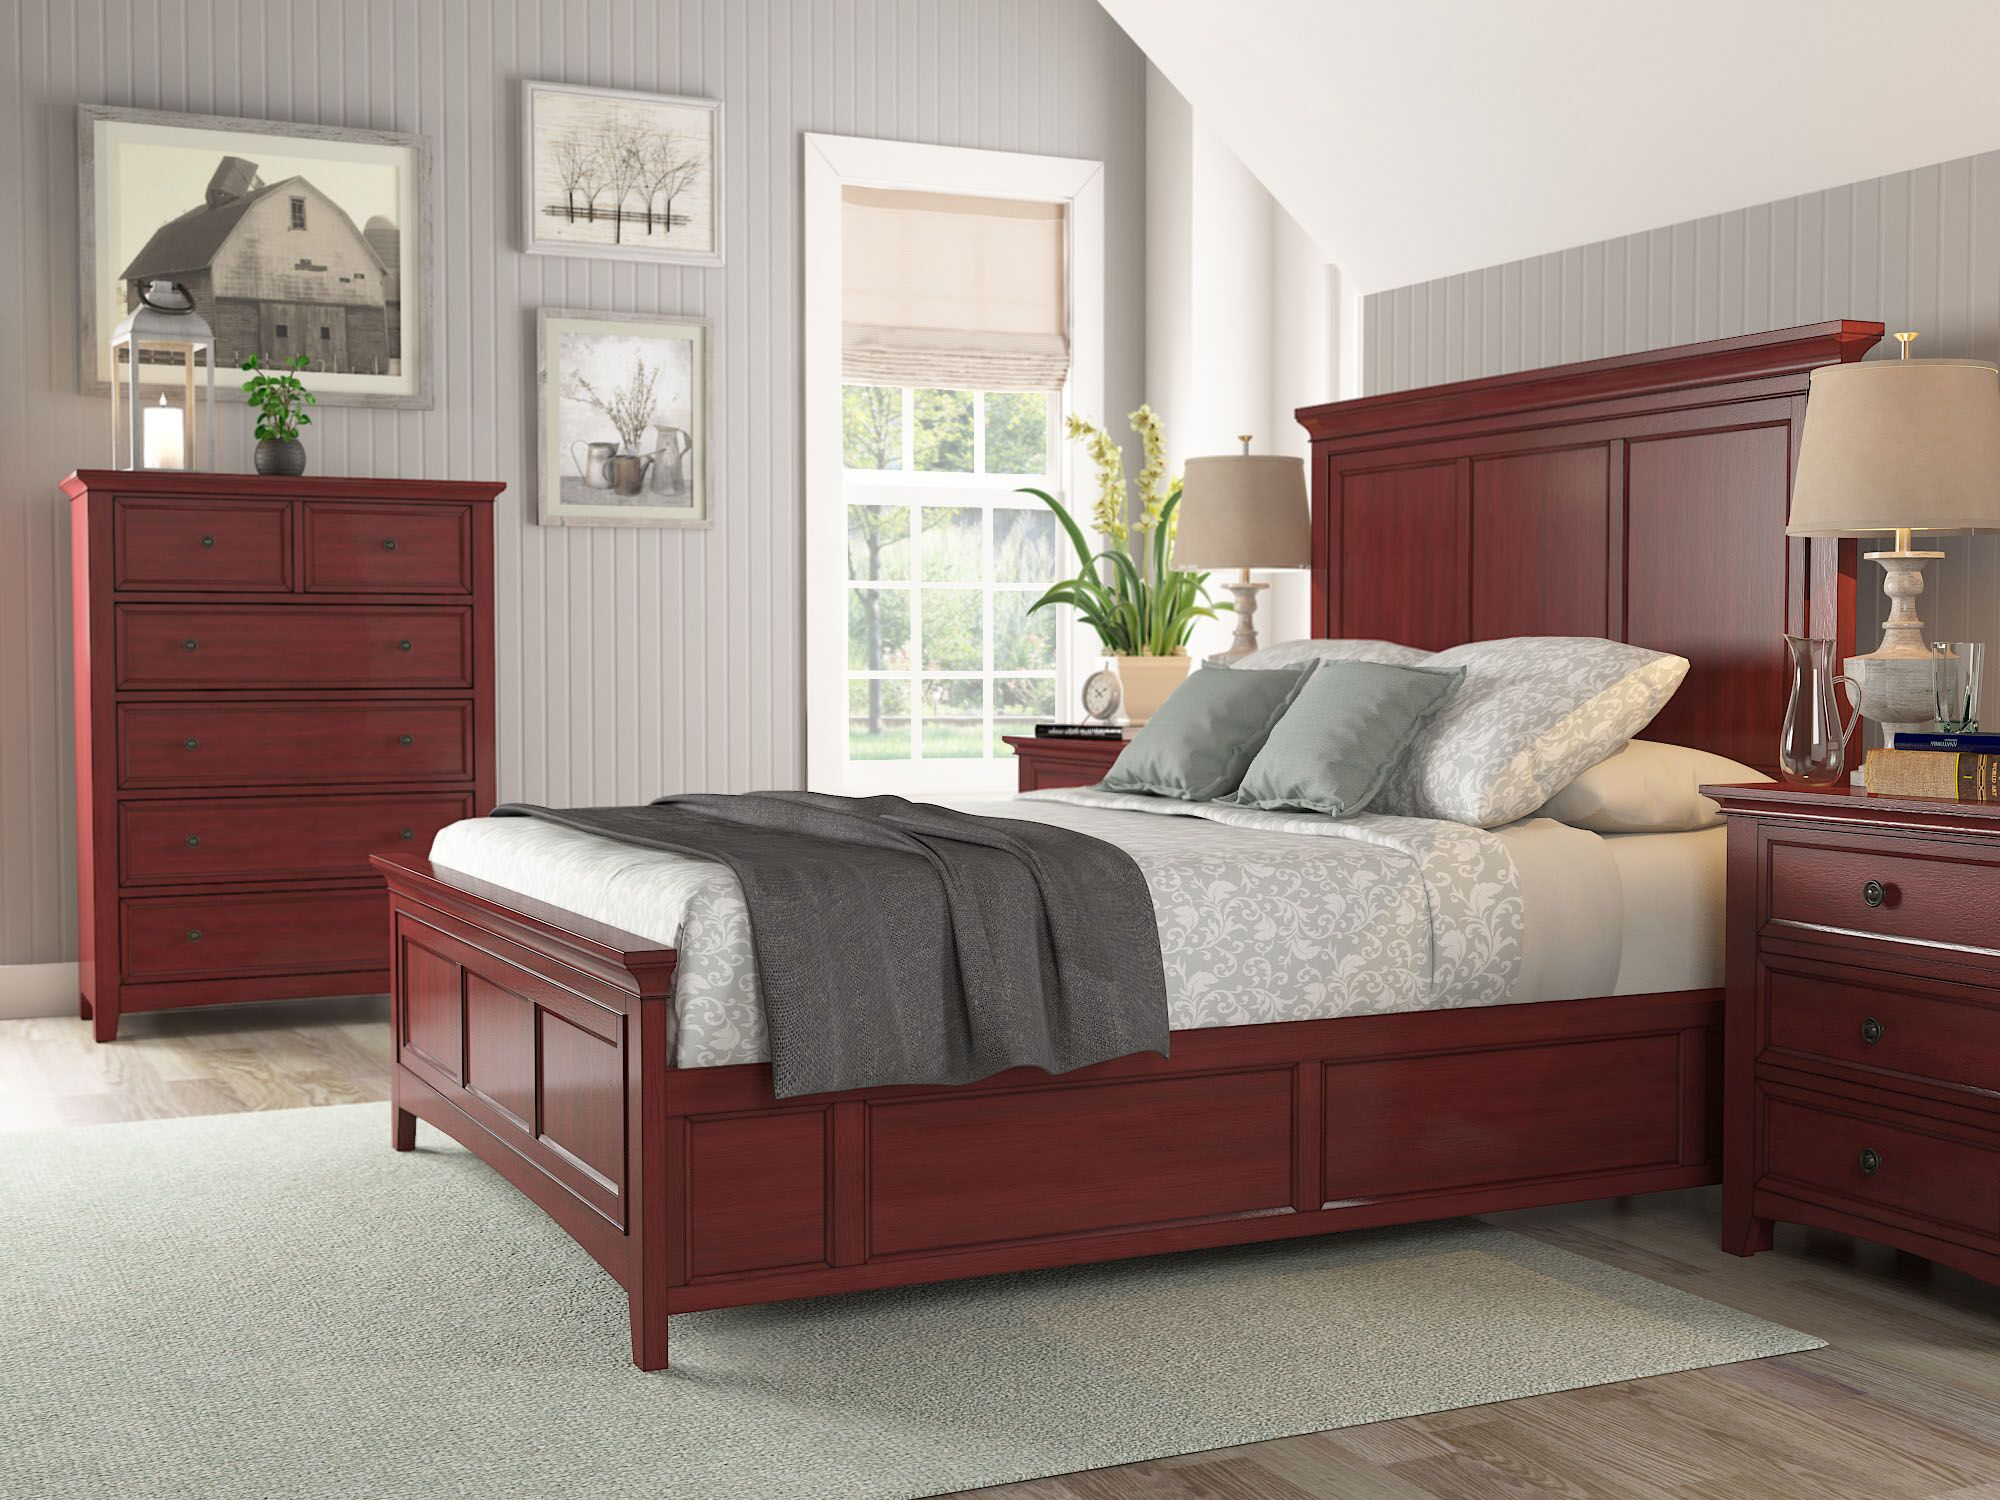 Sefton Platform Bed Color: Berry Red, Size: King